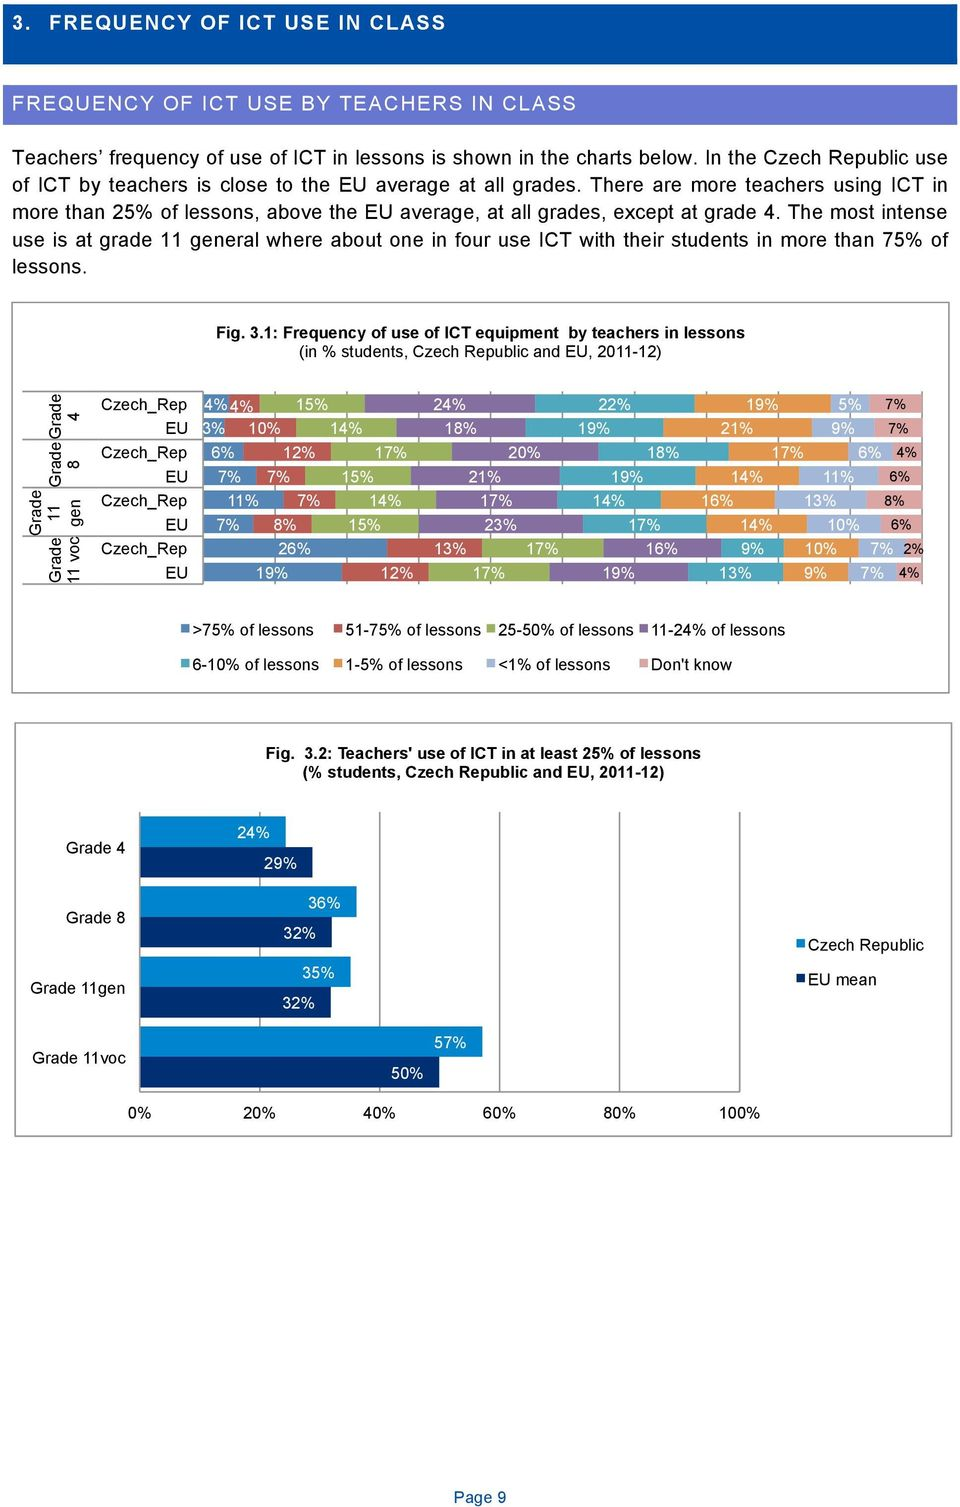 The most intense use is at grade 11 general where about one in four use ICT with their students in more than 75% of lessons. Fig. 3.